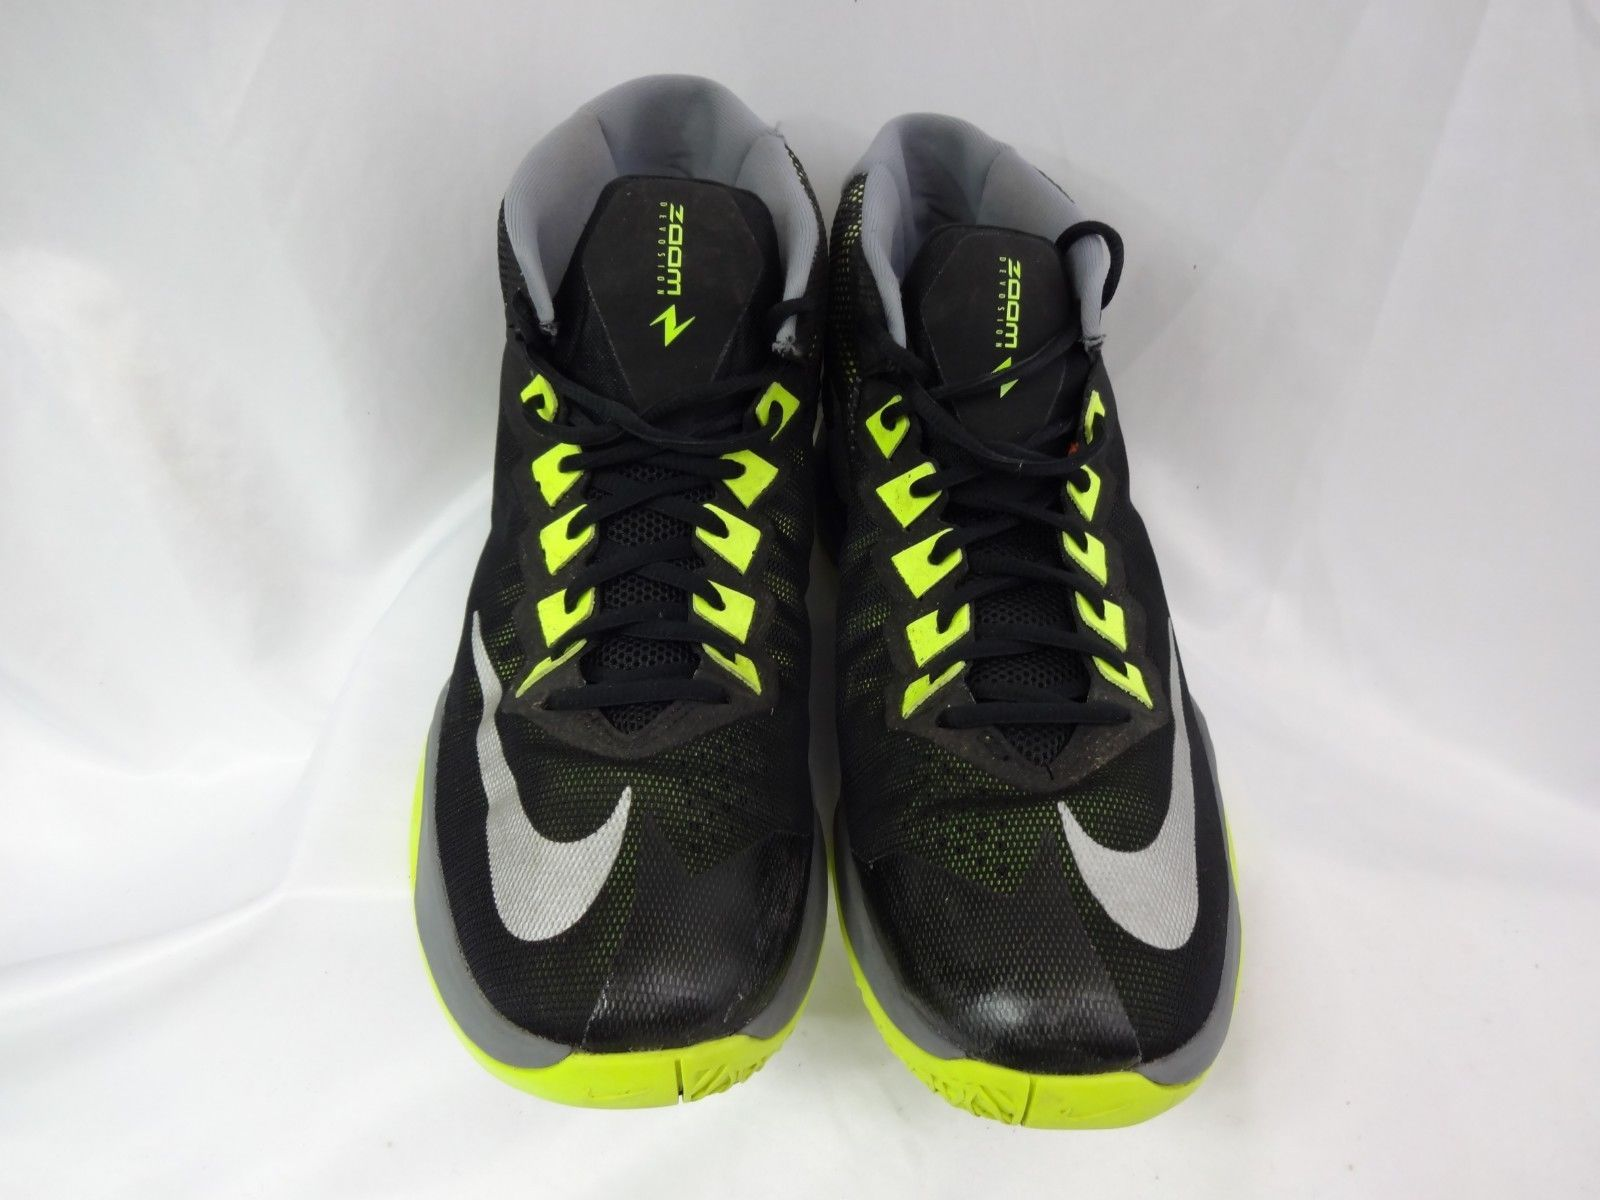 a54476d4402dc Nike Zoom Devosion Basketball Shoes Mens and 50 similar items. 57